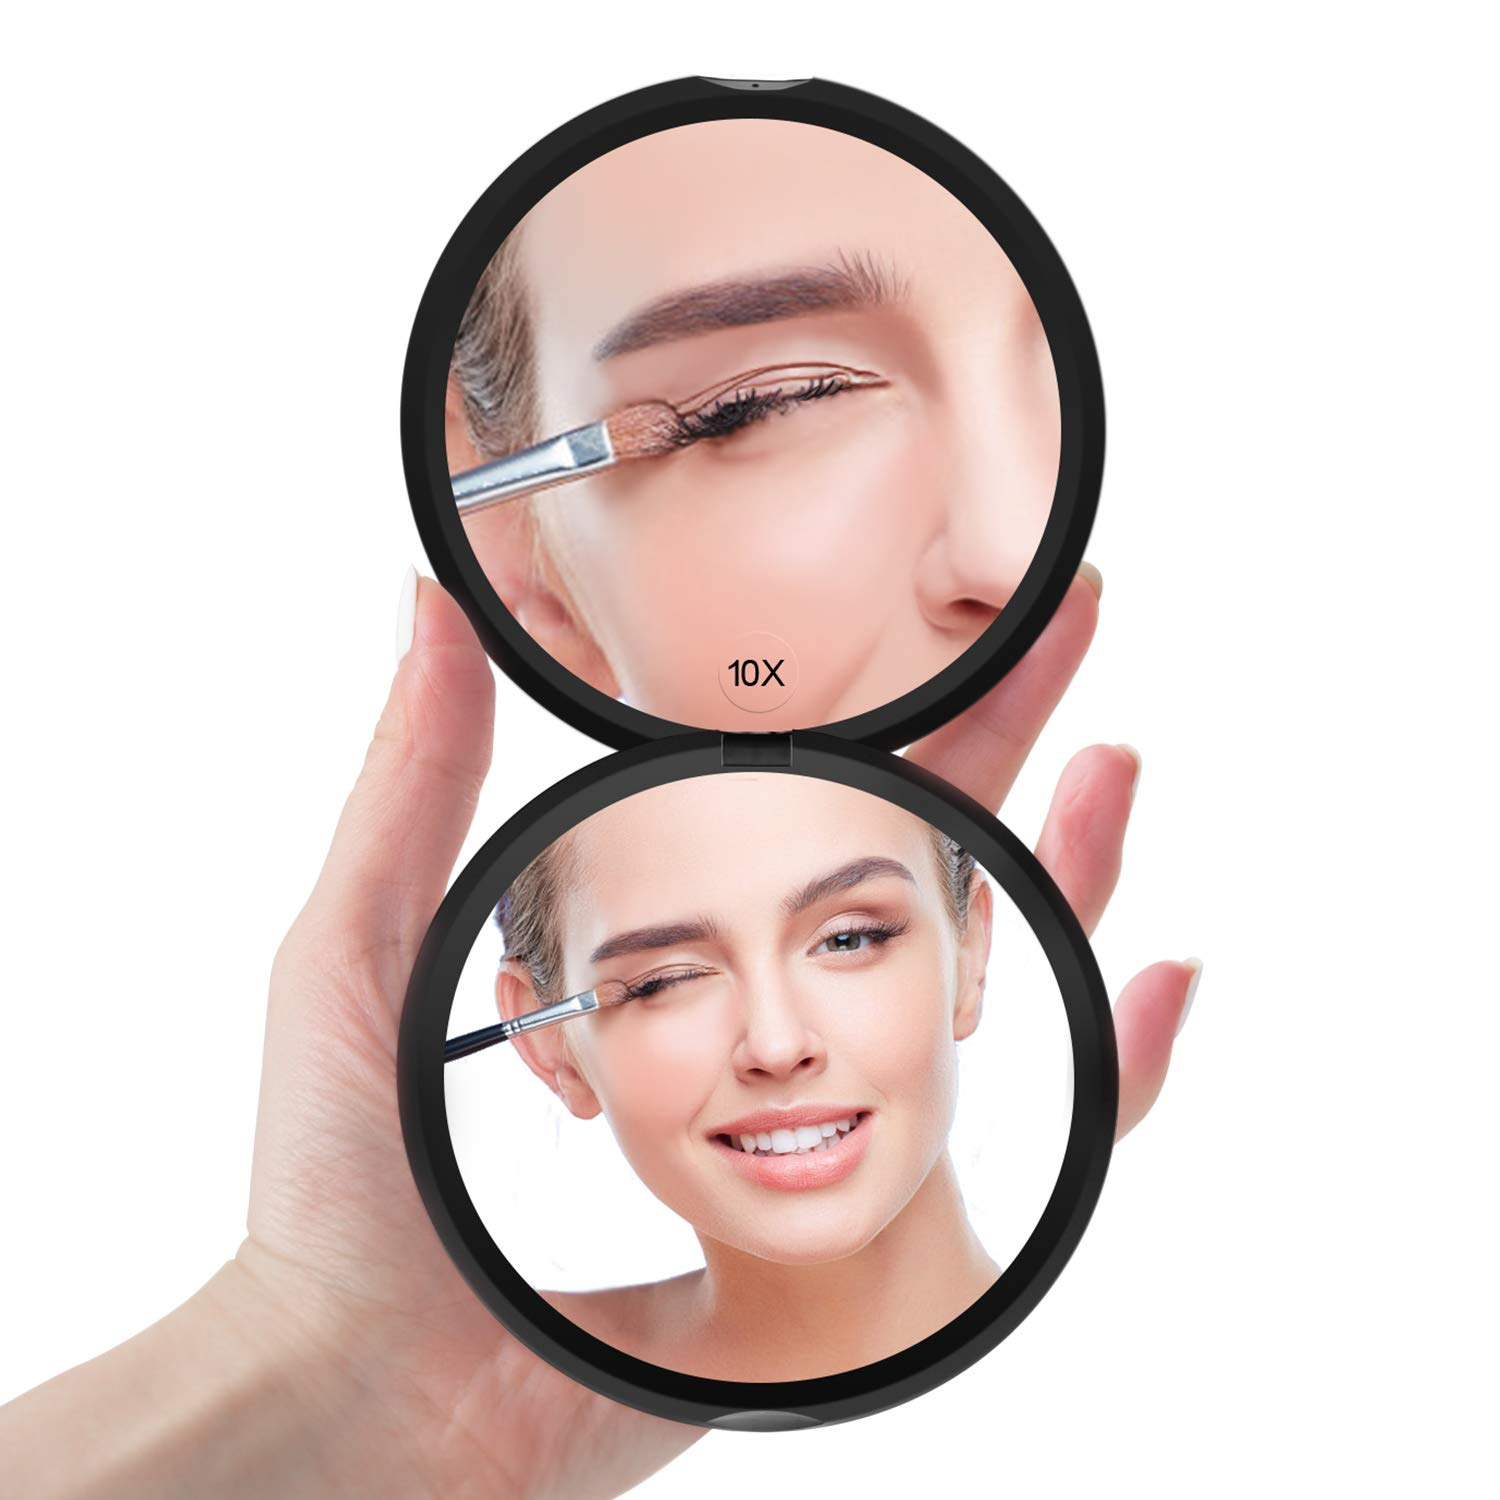 Magnifying Compact Mirror for Purses – Benbilry Double Sided Travel Makeup Mirror with 10X Magnification, 4 Inch Small Pocket Mirror, Portable Folding Great Compact Cosmetic Mirror Black